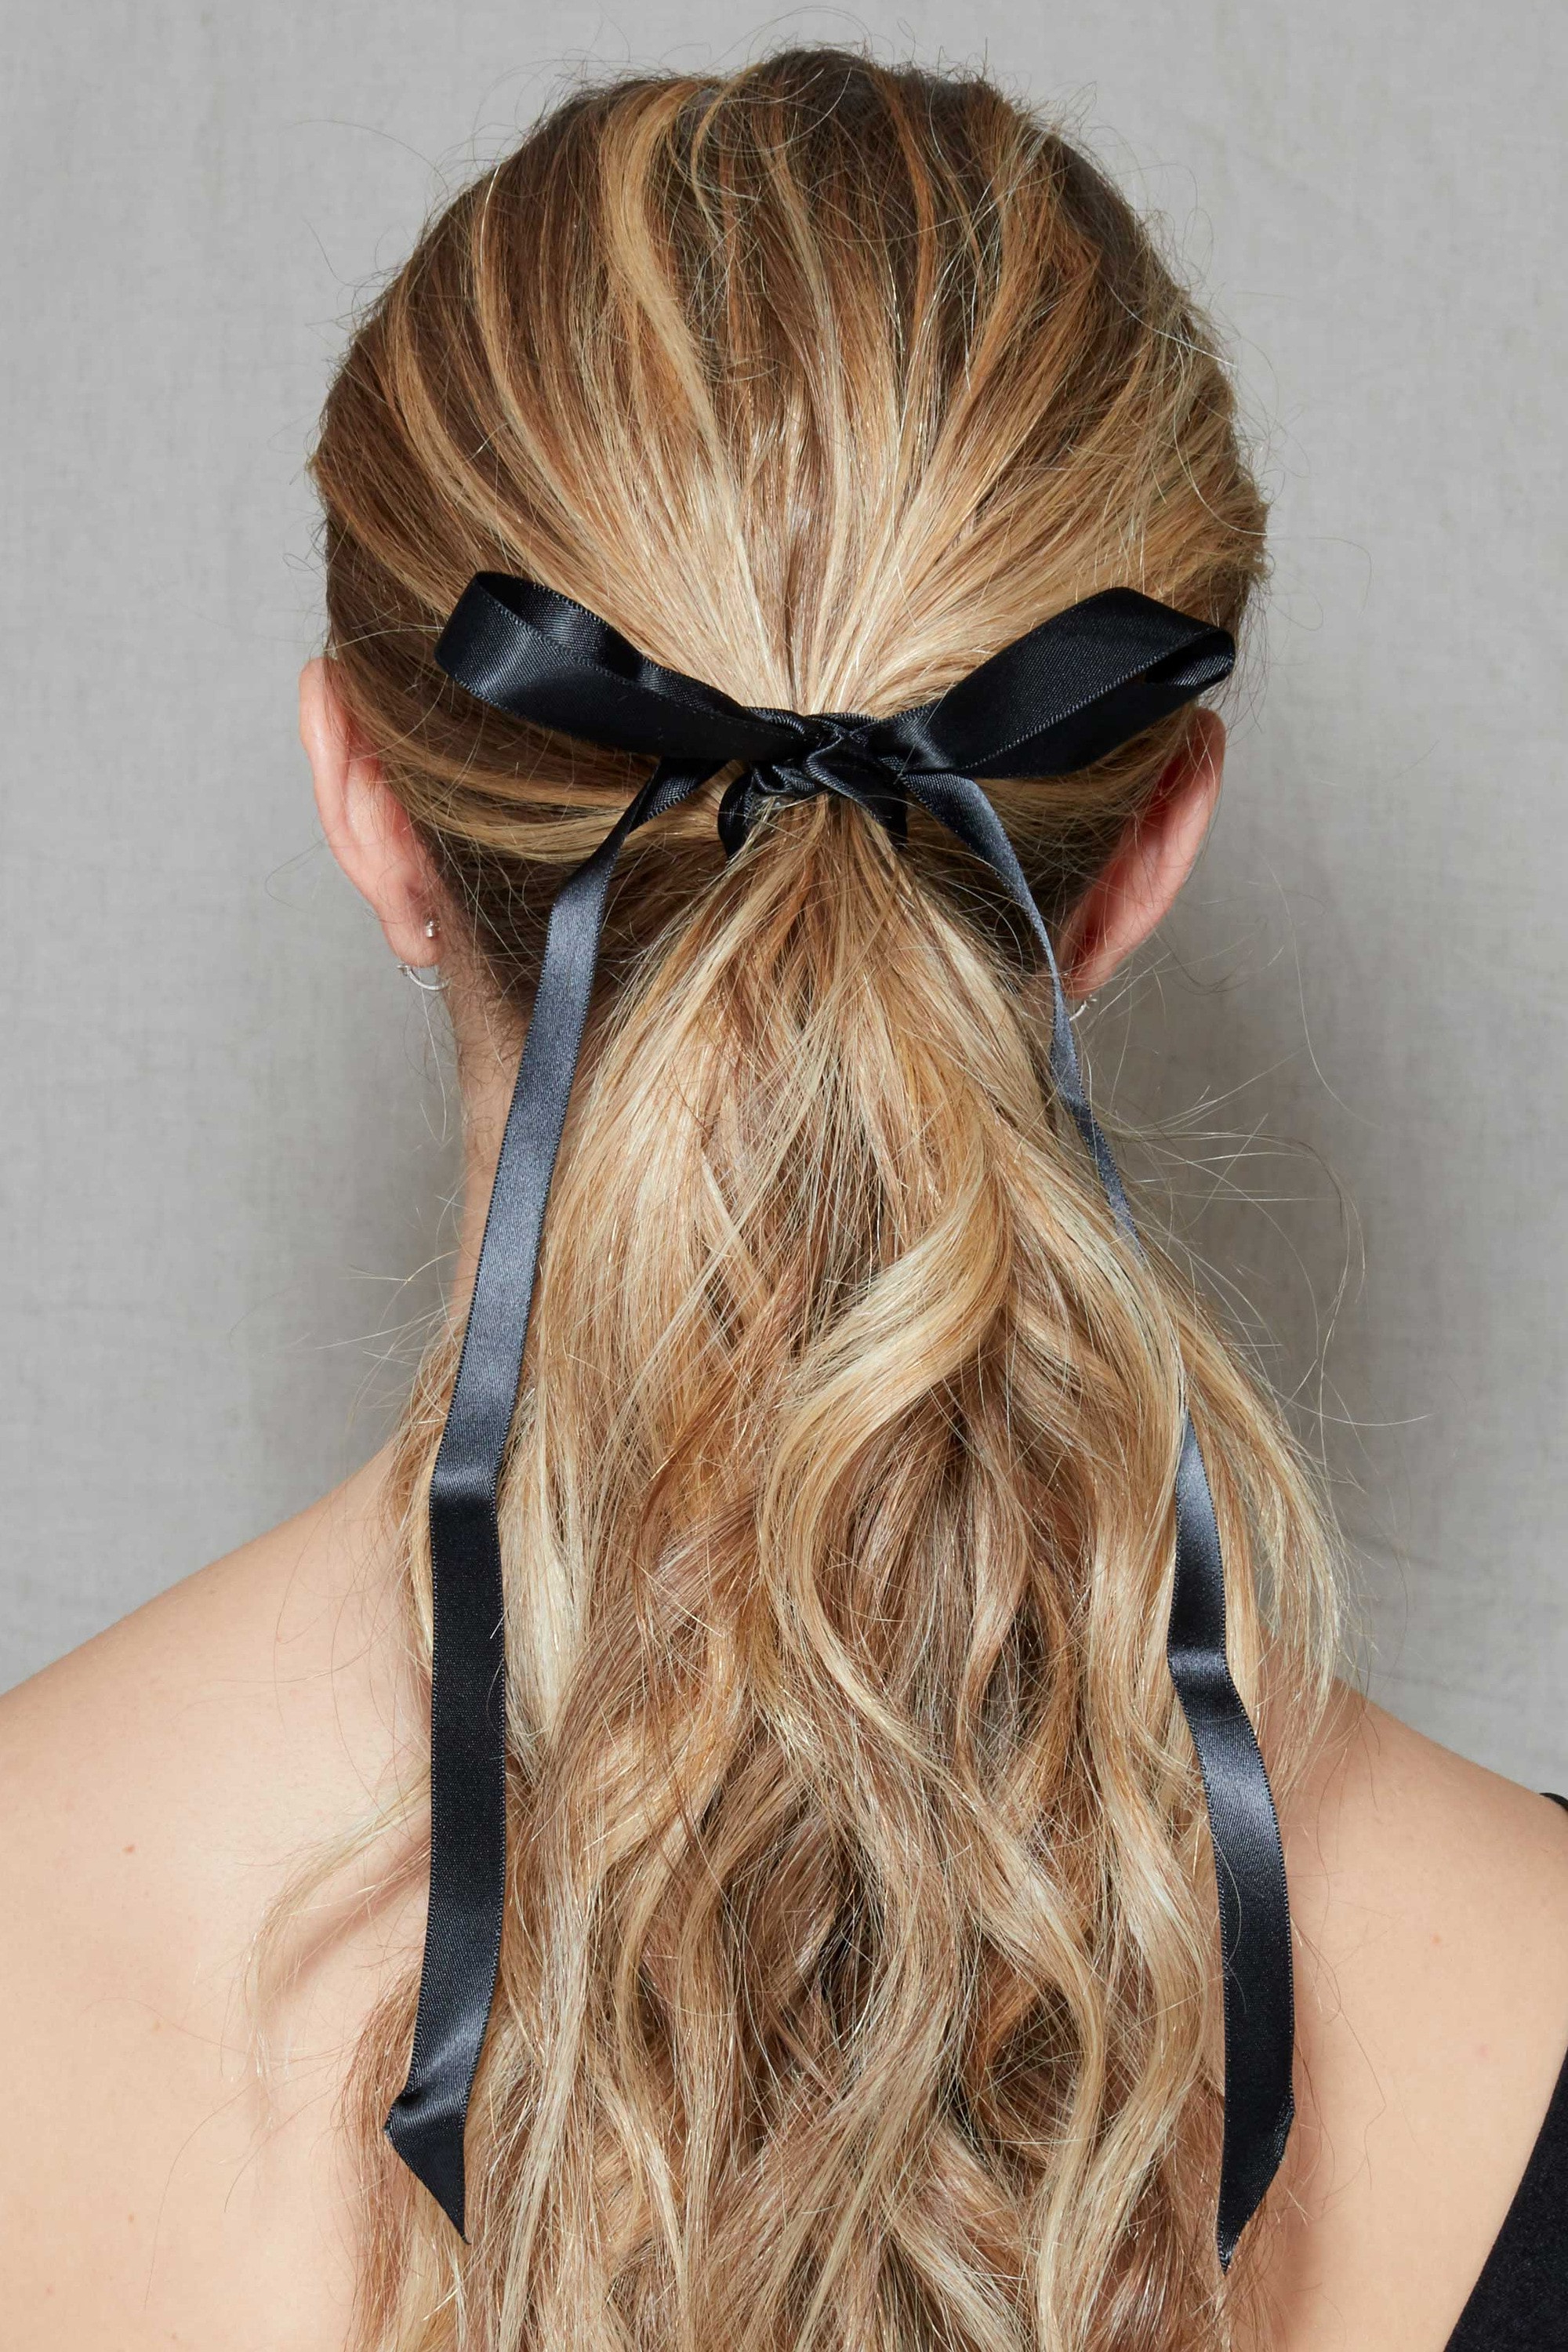 2018 Pinned Brunette Ribbons Bridal Hairstyles In 25 Wedding Guest Hairstyles That'll Make You The Chicest Attendee (View 1 of 20)